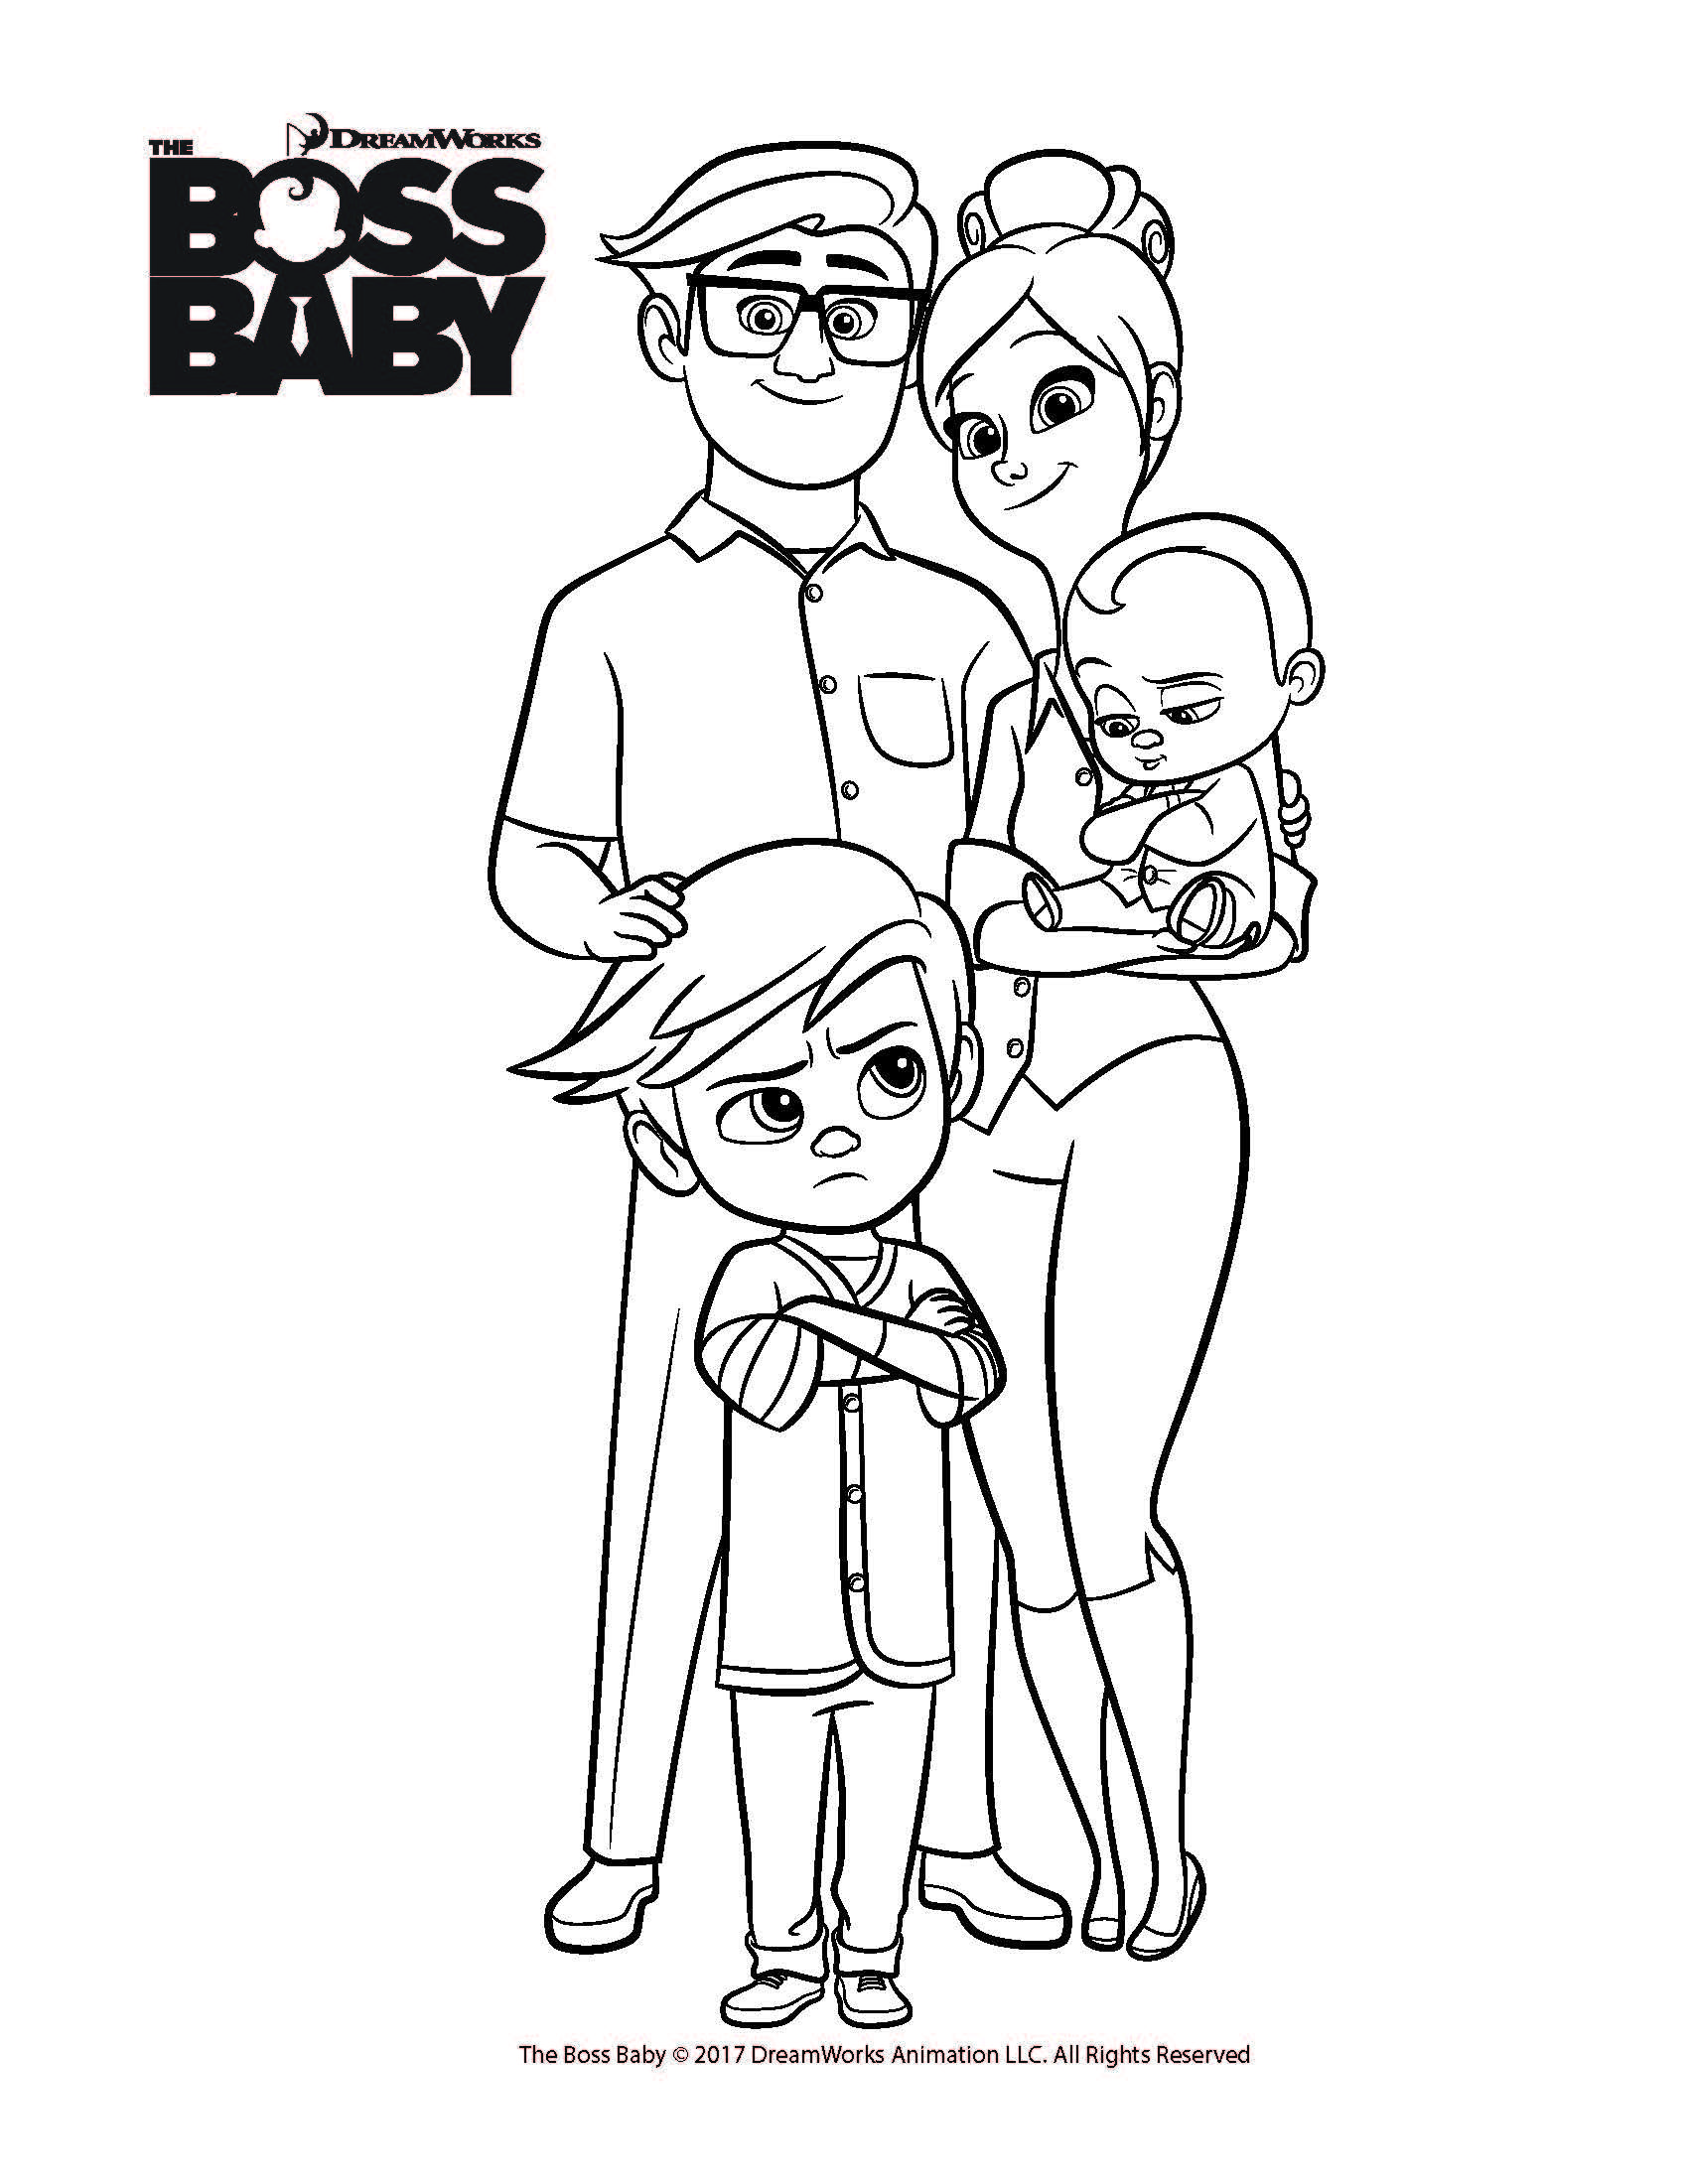 Free coloring page baby - Explore Boss Baby Free Coloring And More